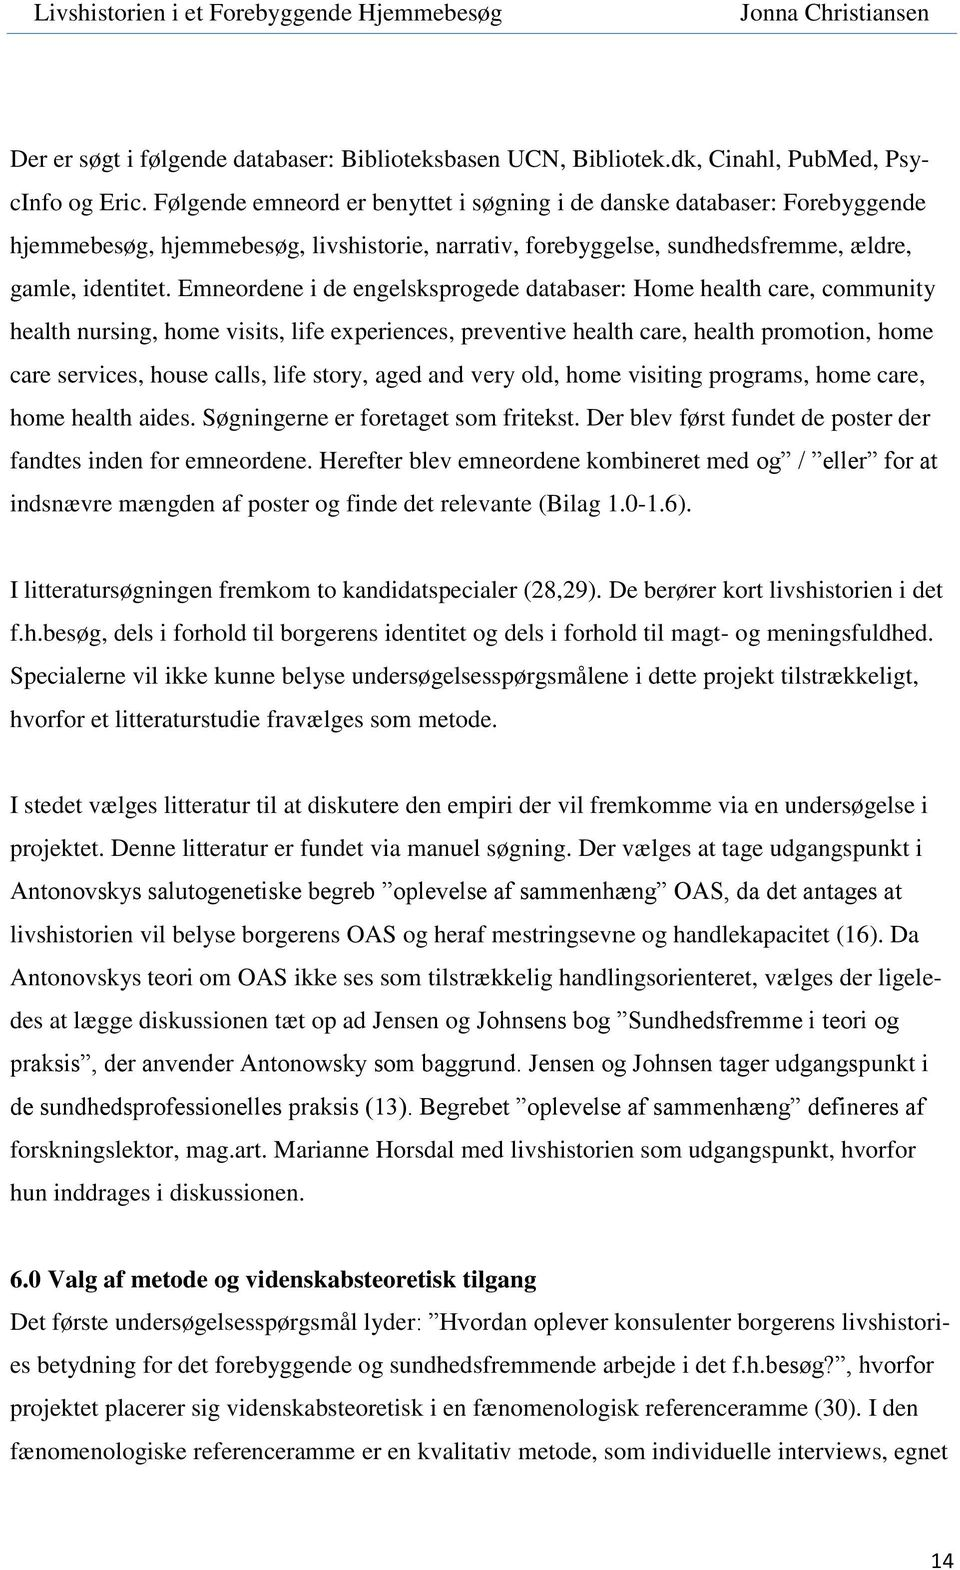 Emneordene i de engelsksprogede databaser: Home health care, community health nursing, home visits, life experiences, preventive health care, health promotion, home care services, house calls, life